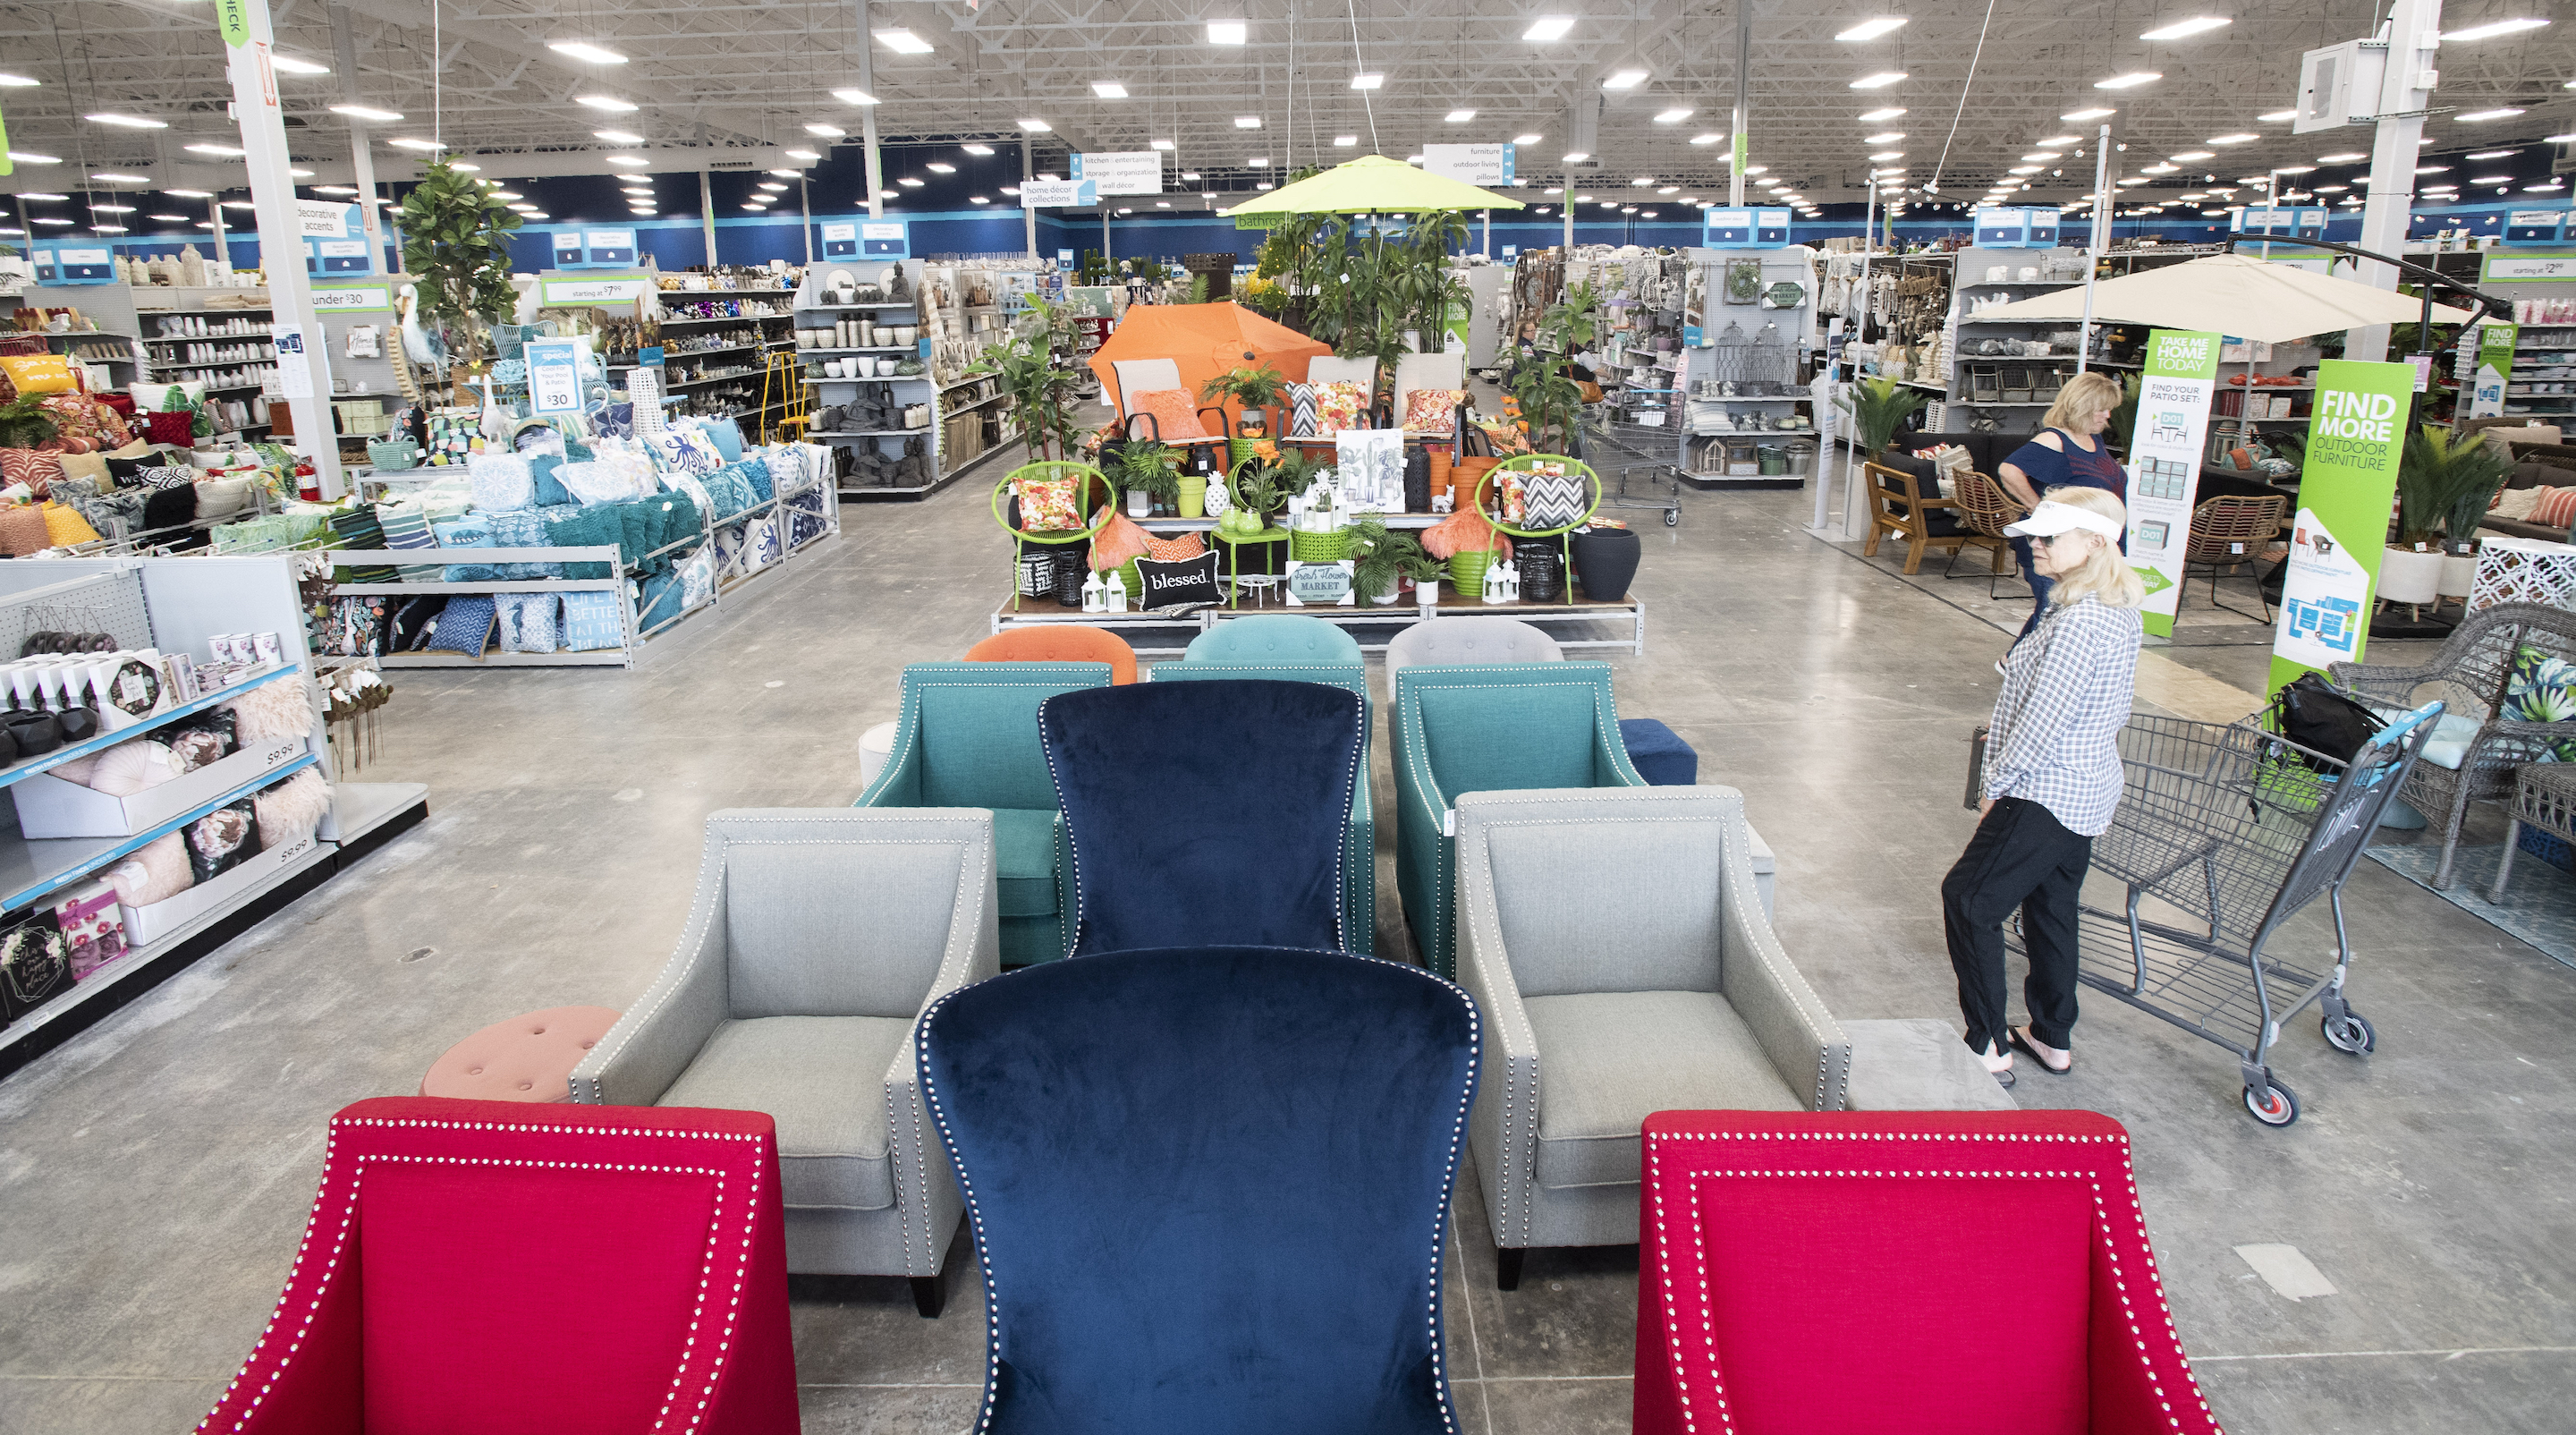 An At Home store, which opened this spring in Foothill Ranch, Calif. The home decor chain's low-price strategy has been slammed by punitive tariffs on Chinese imports instigated by President Trump.